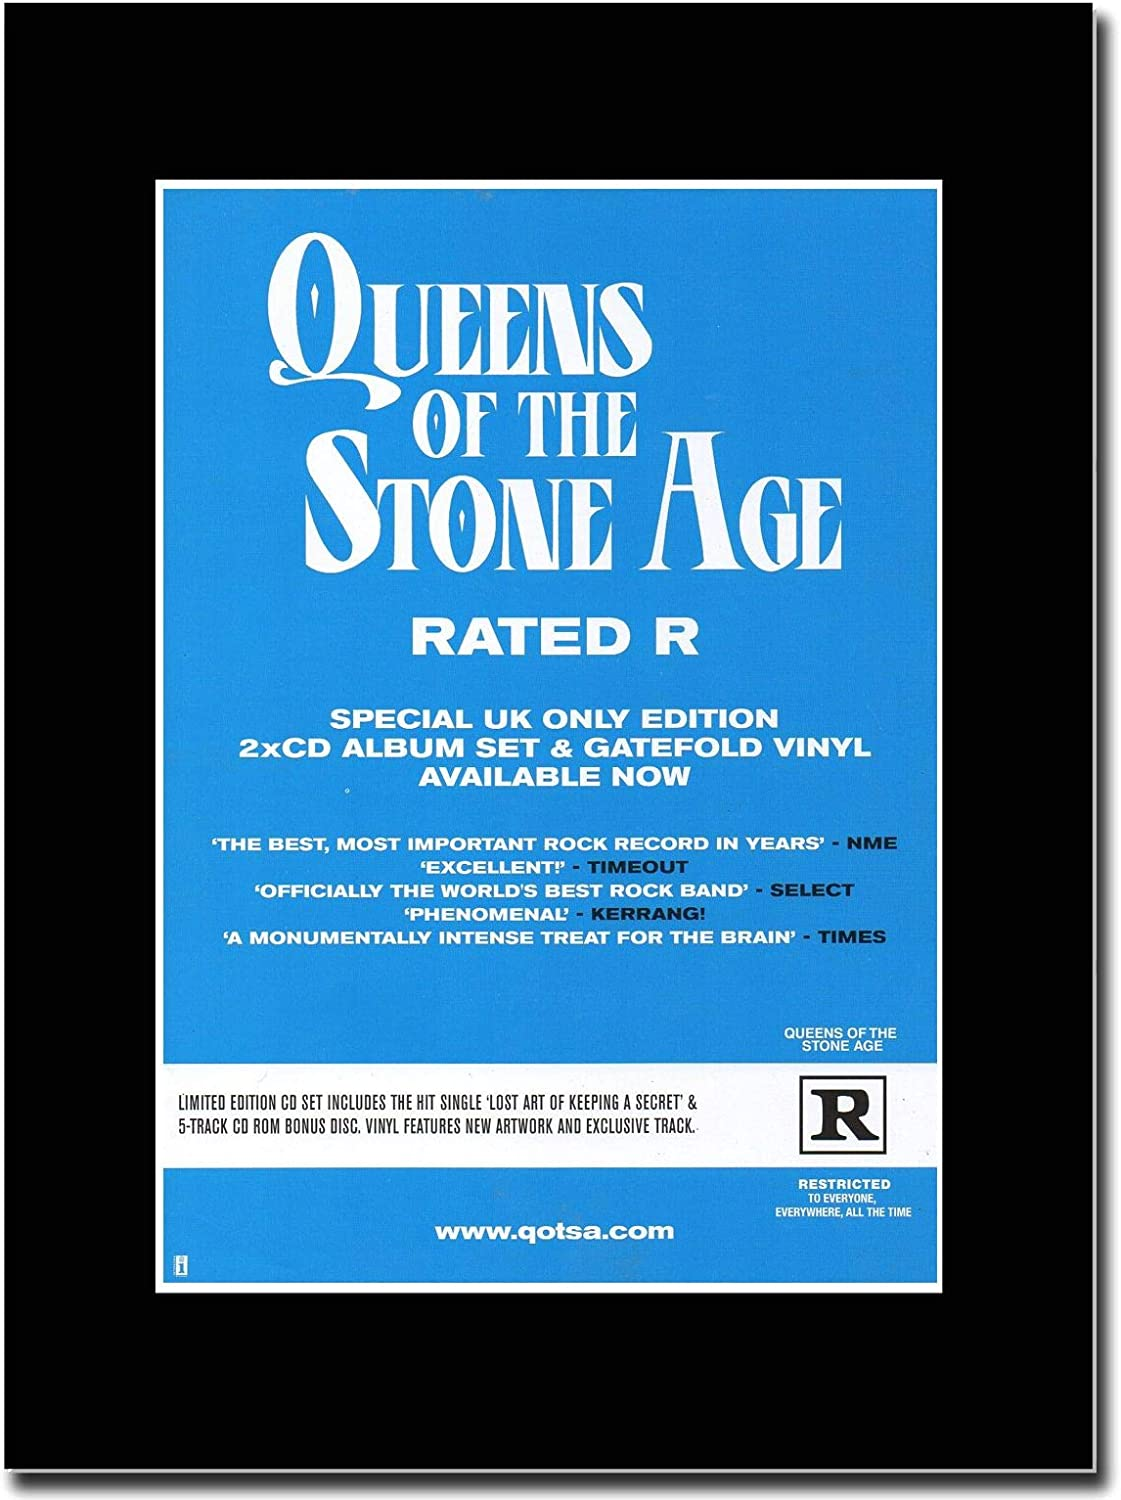 Gasolinerainbows - Queens of The Stone Age - Rated R - Revista montada Obra de Arte Promocional en una Montura Negra - Matted Mounted Magazine Promotional Artwork on a Black Mount